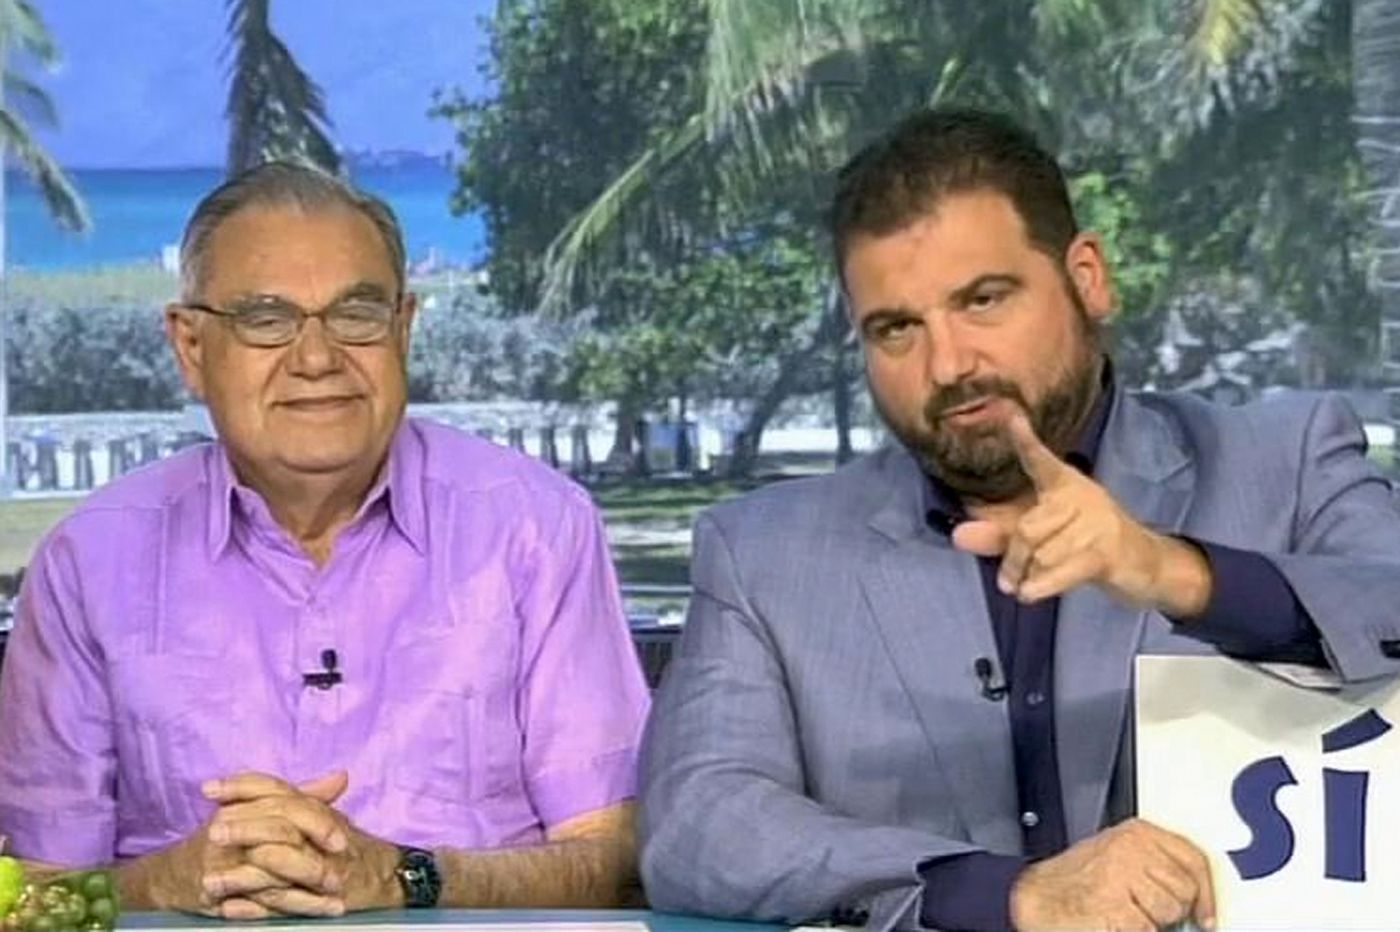 ESPN's Dan Le Batard off the radio following comments about Trump. But he'll still be on TV.